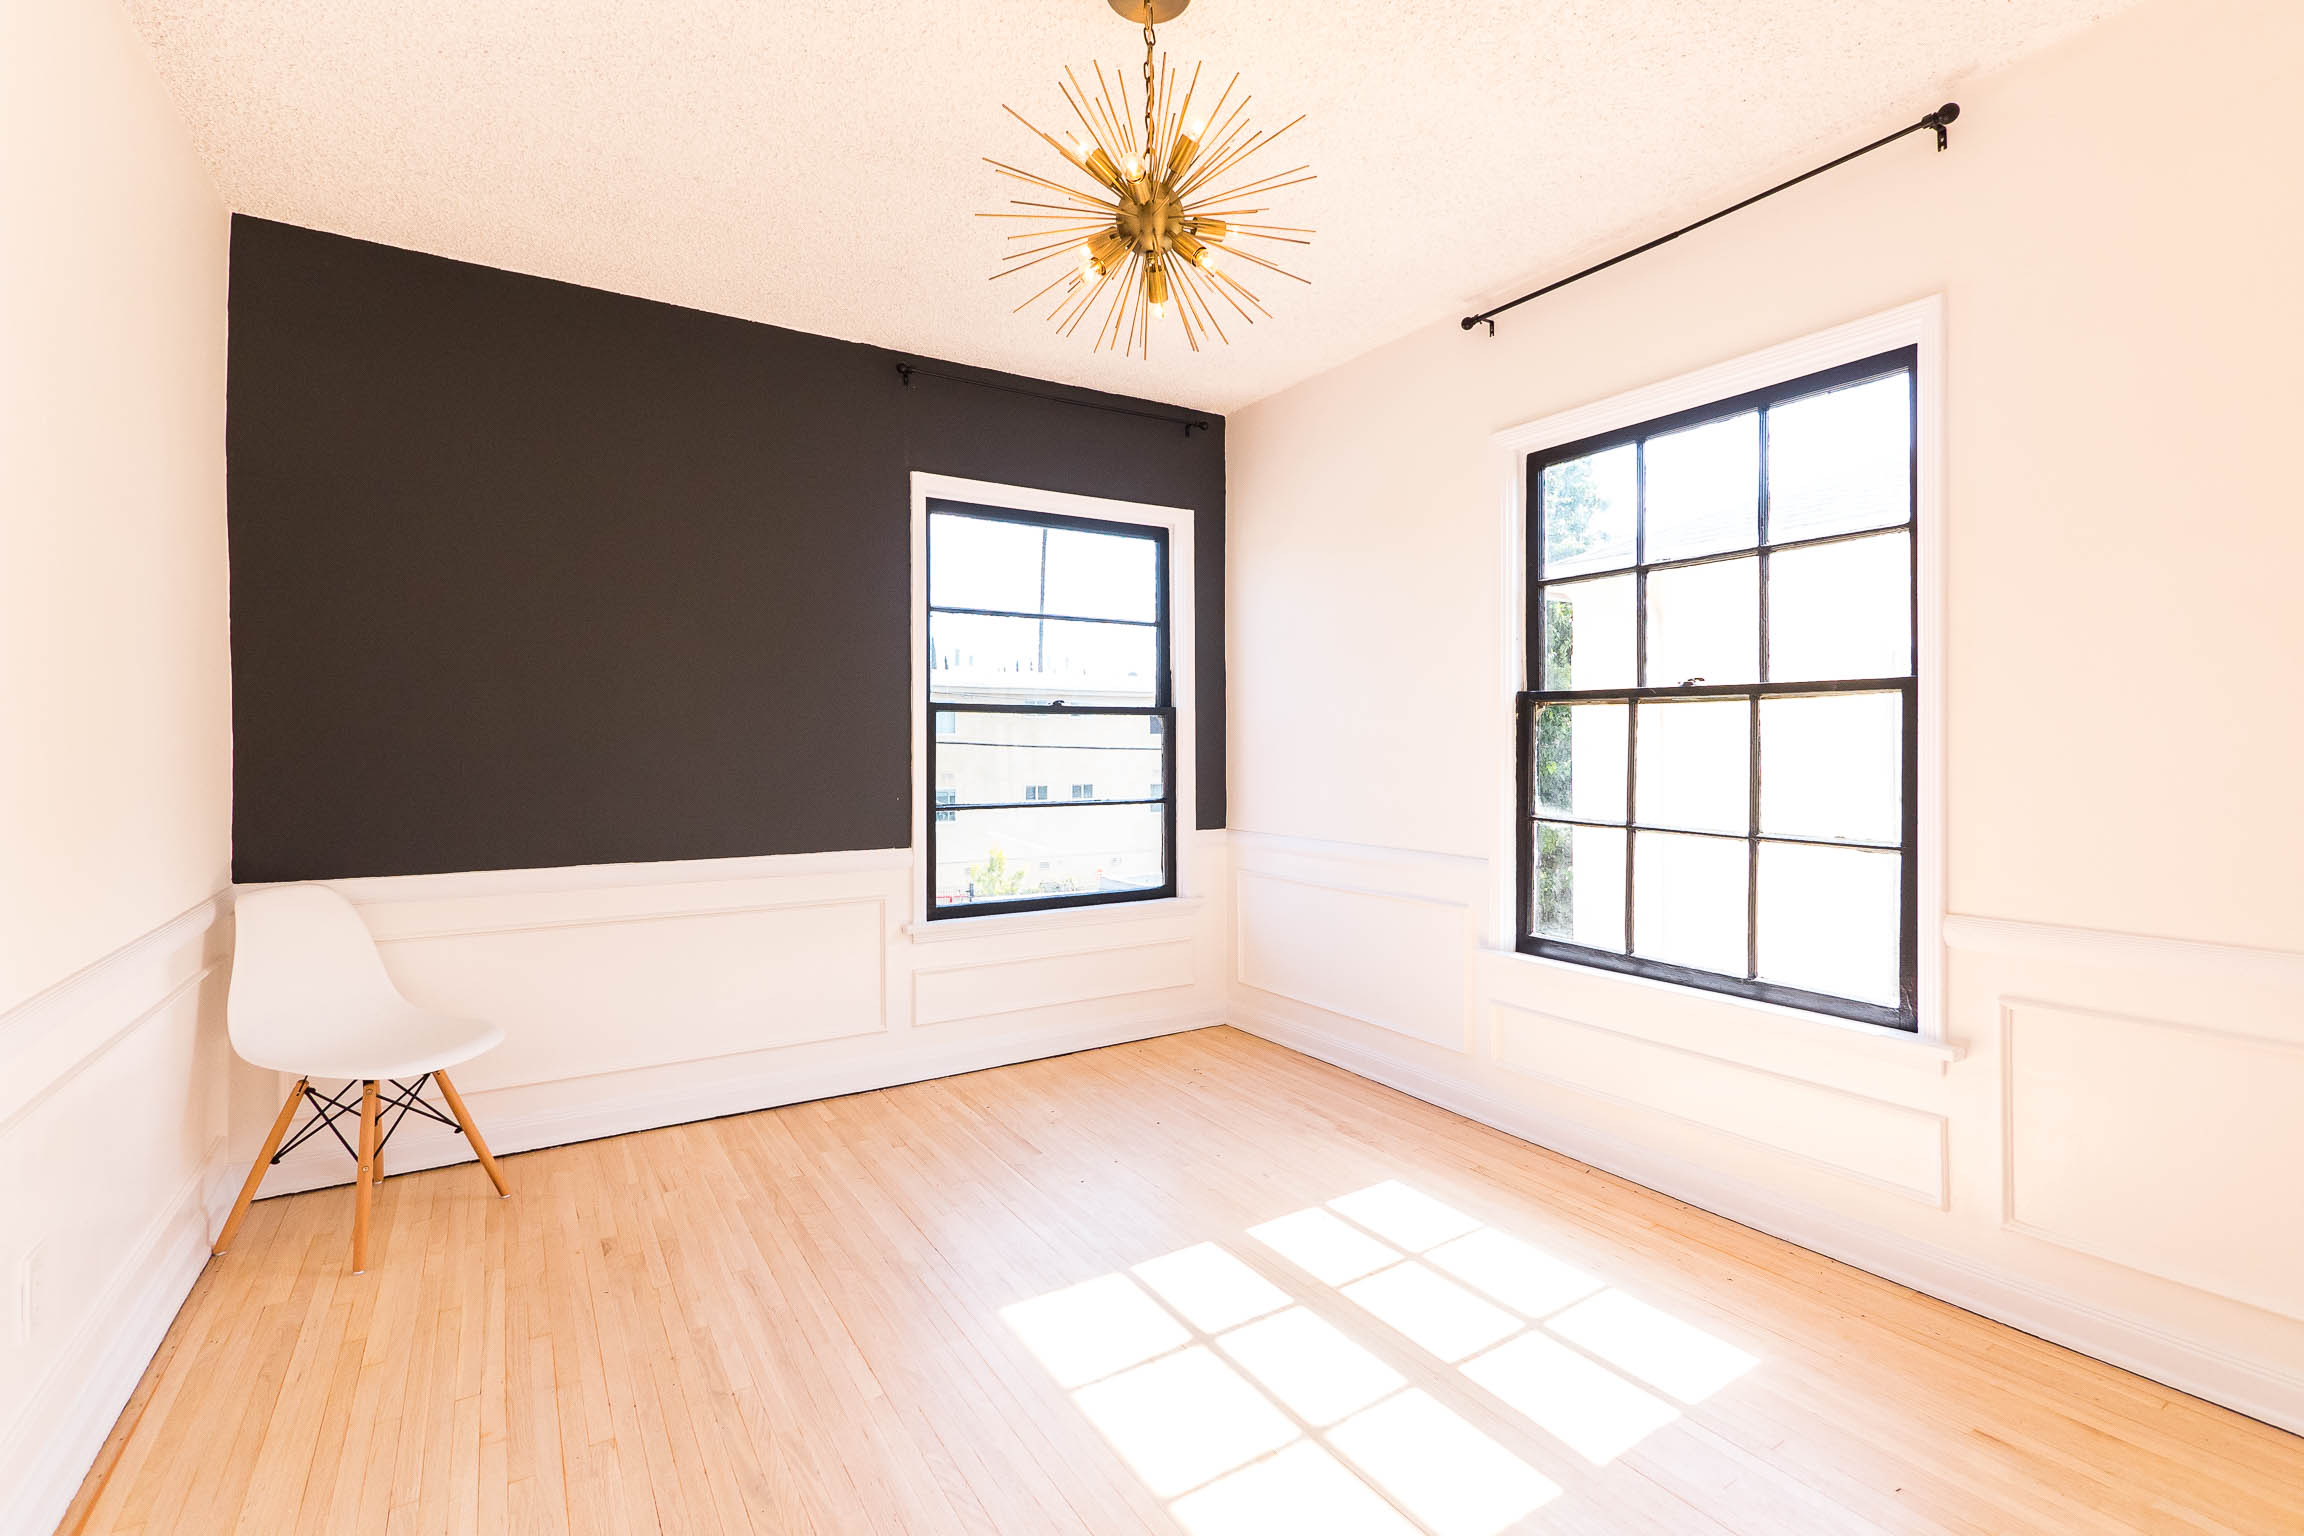 Trendy Designer Unit for the Modern Minimalist! Real Hardwood Floors - Cosmopolitan Fixtures - Parking - Washer/Dryer!